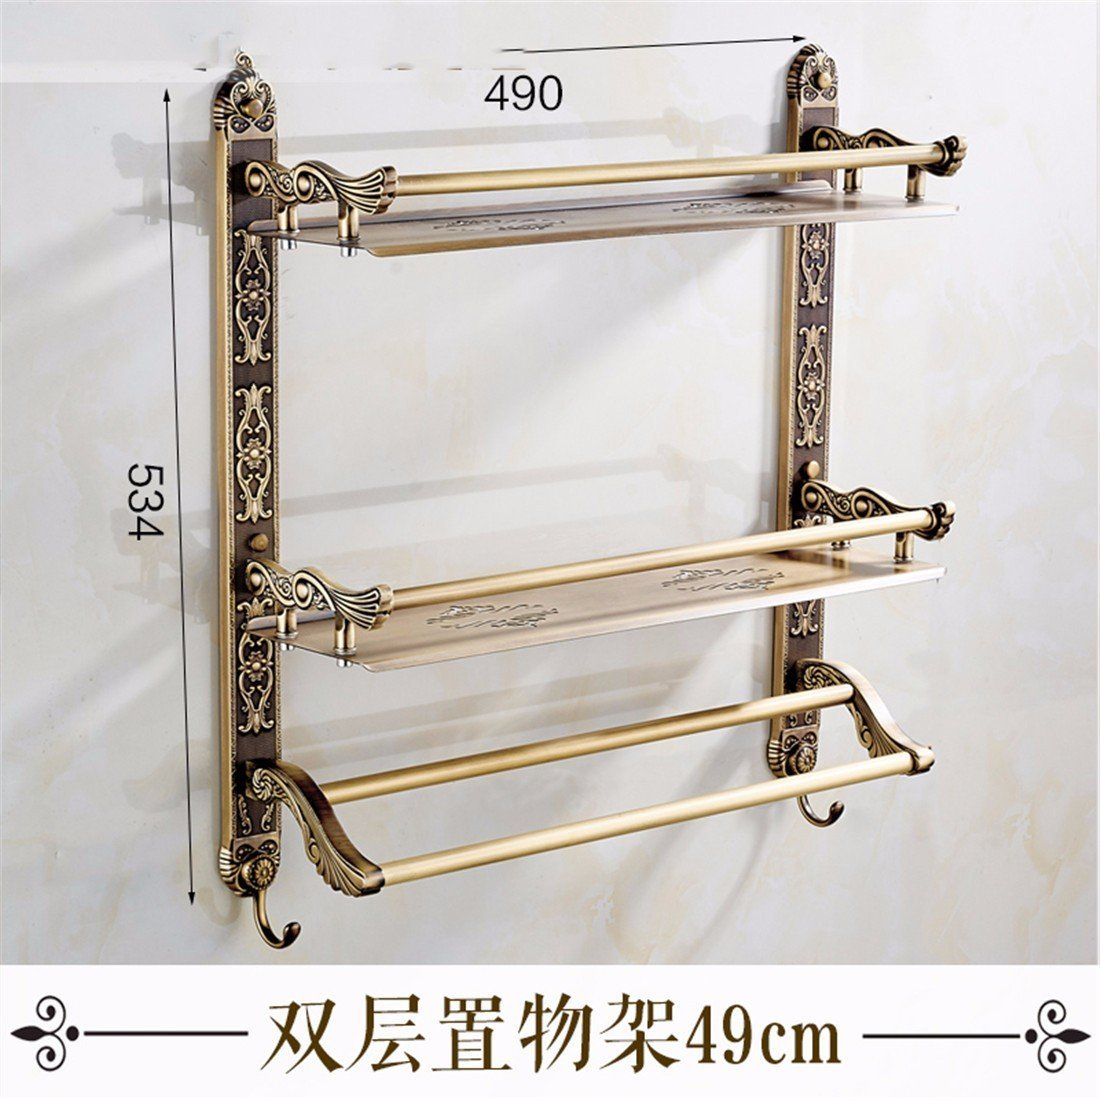 LAONA Continental antique carved Bathroom Wall in a retro active folding towel rack Towel racks, built-in shelf 2 C